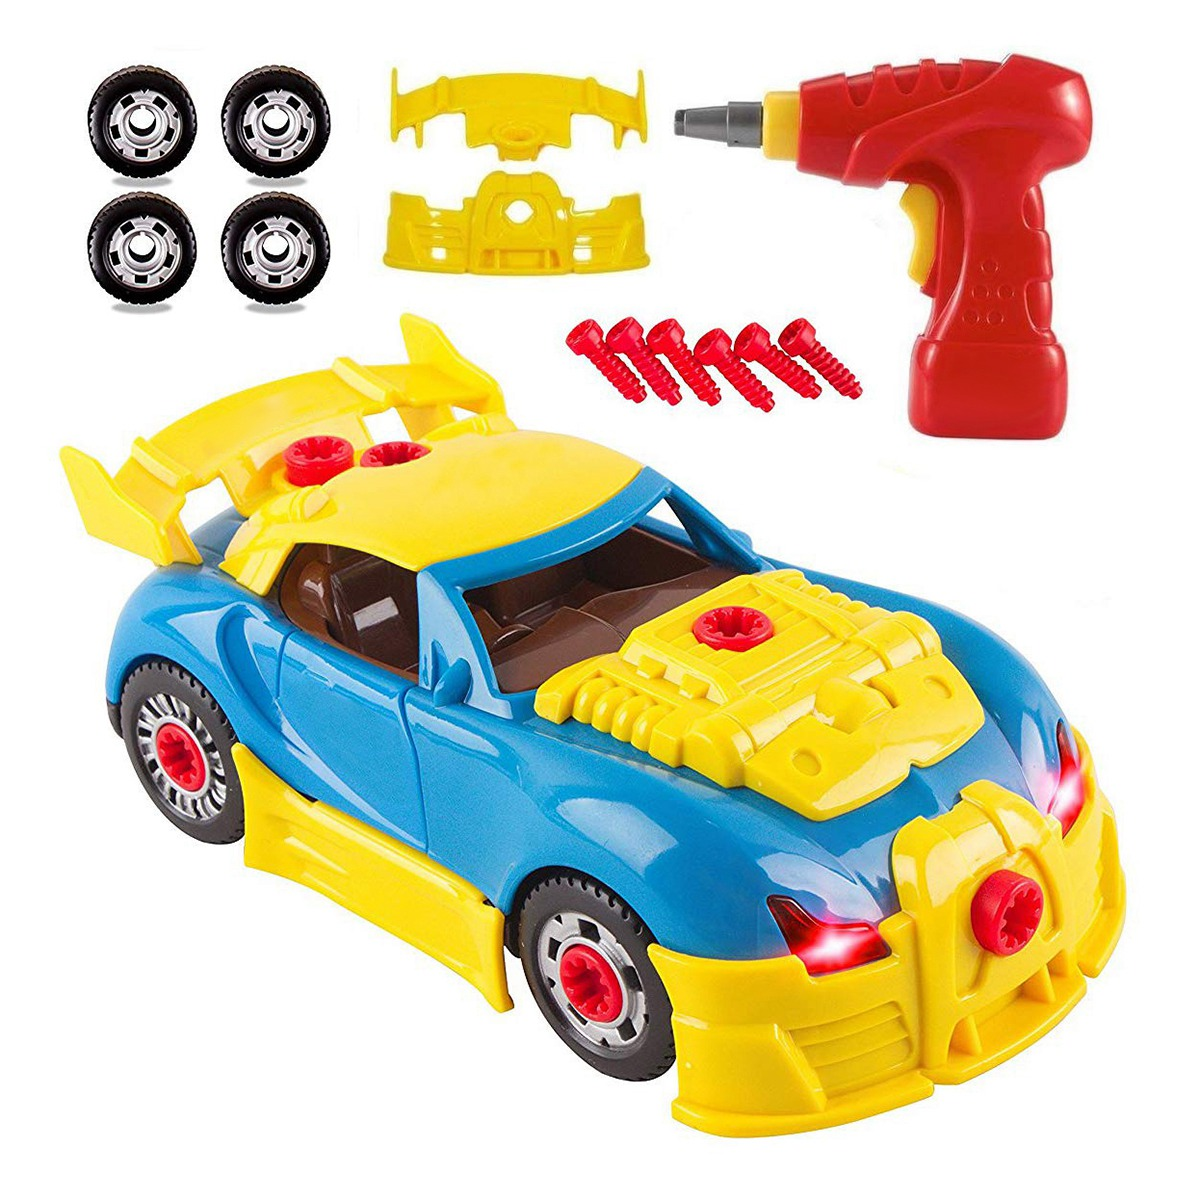 30Pcs Children'S Diy Racing Toy Electric Drill Disassembly Toy Car Assembly Disassembly Toy Children'S Hands-On Screw Car Puzz